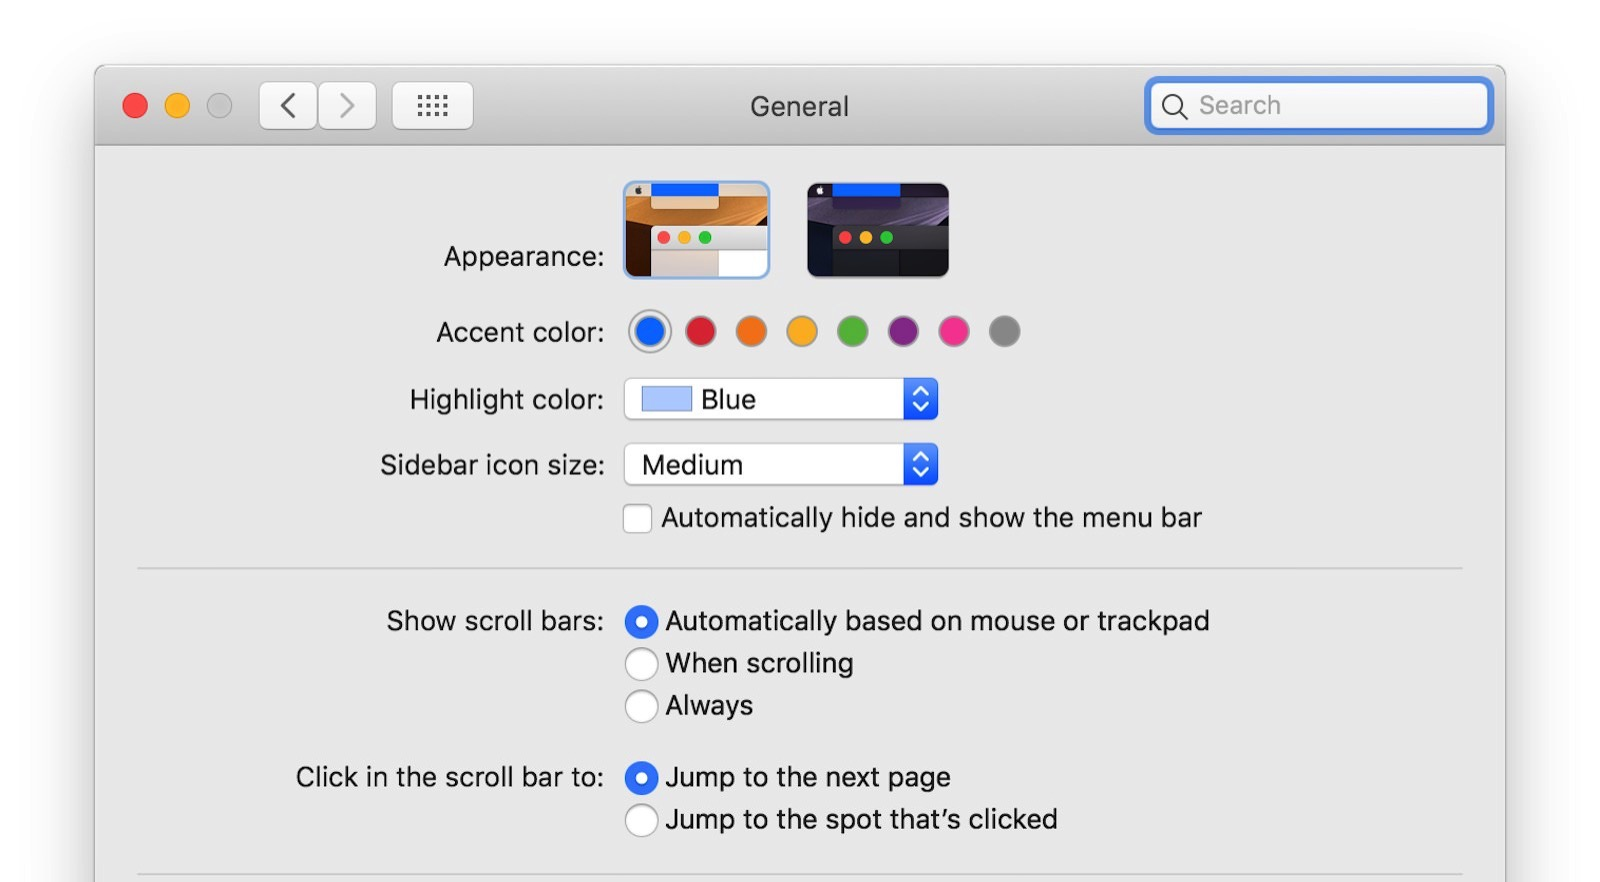 Accent color on mojave